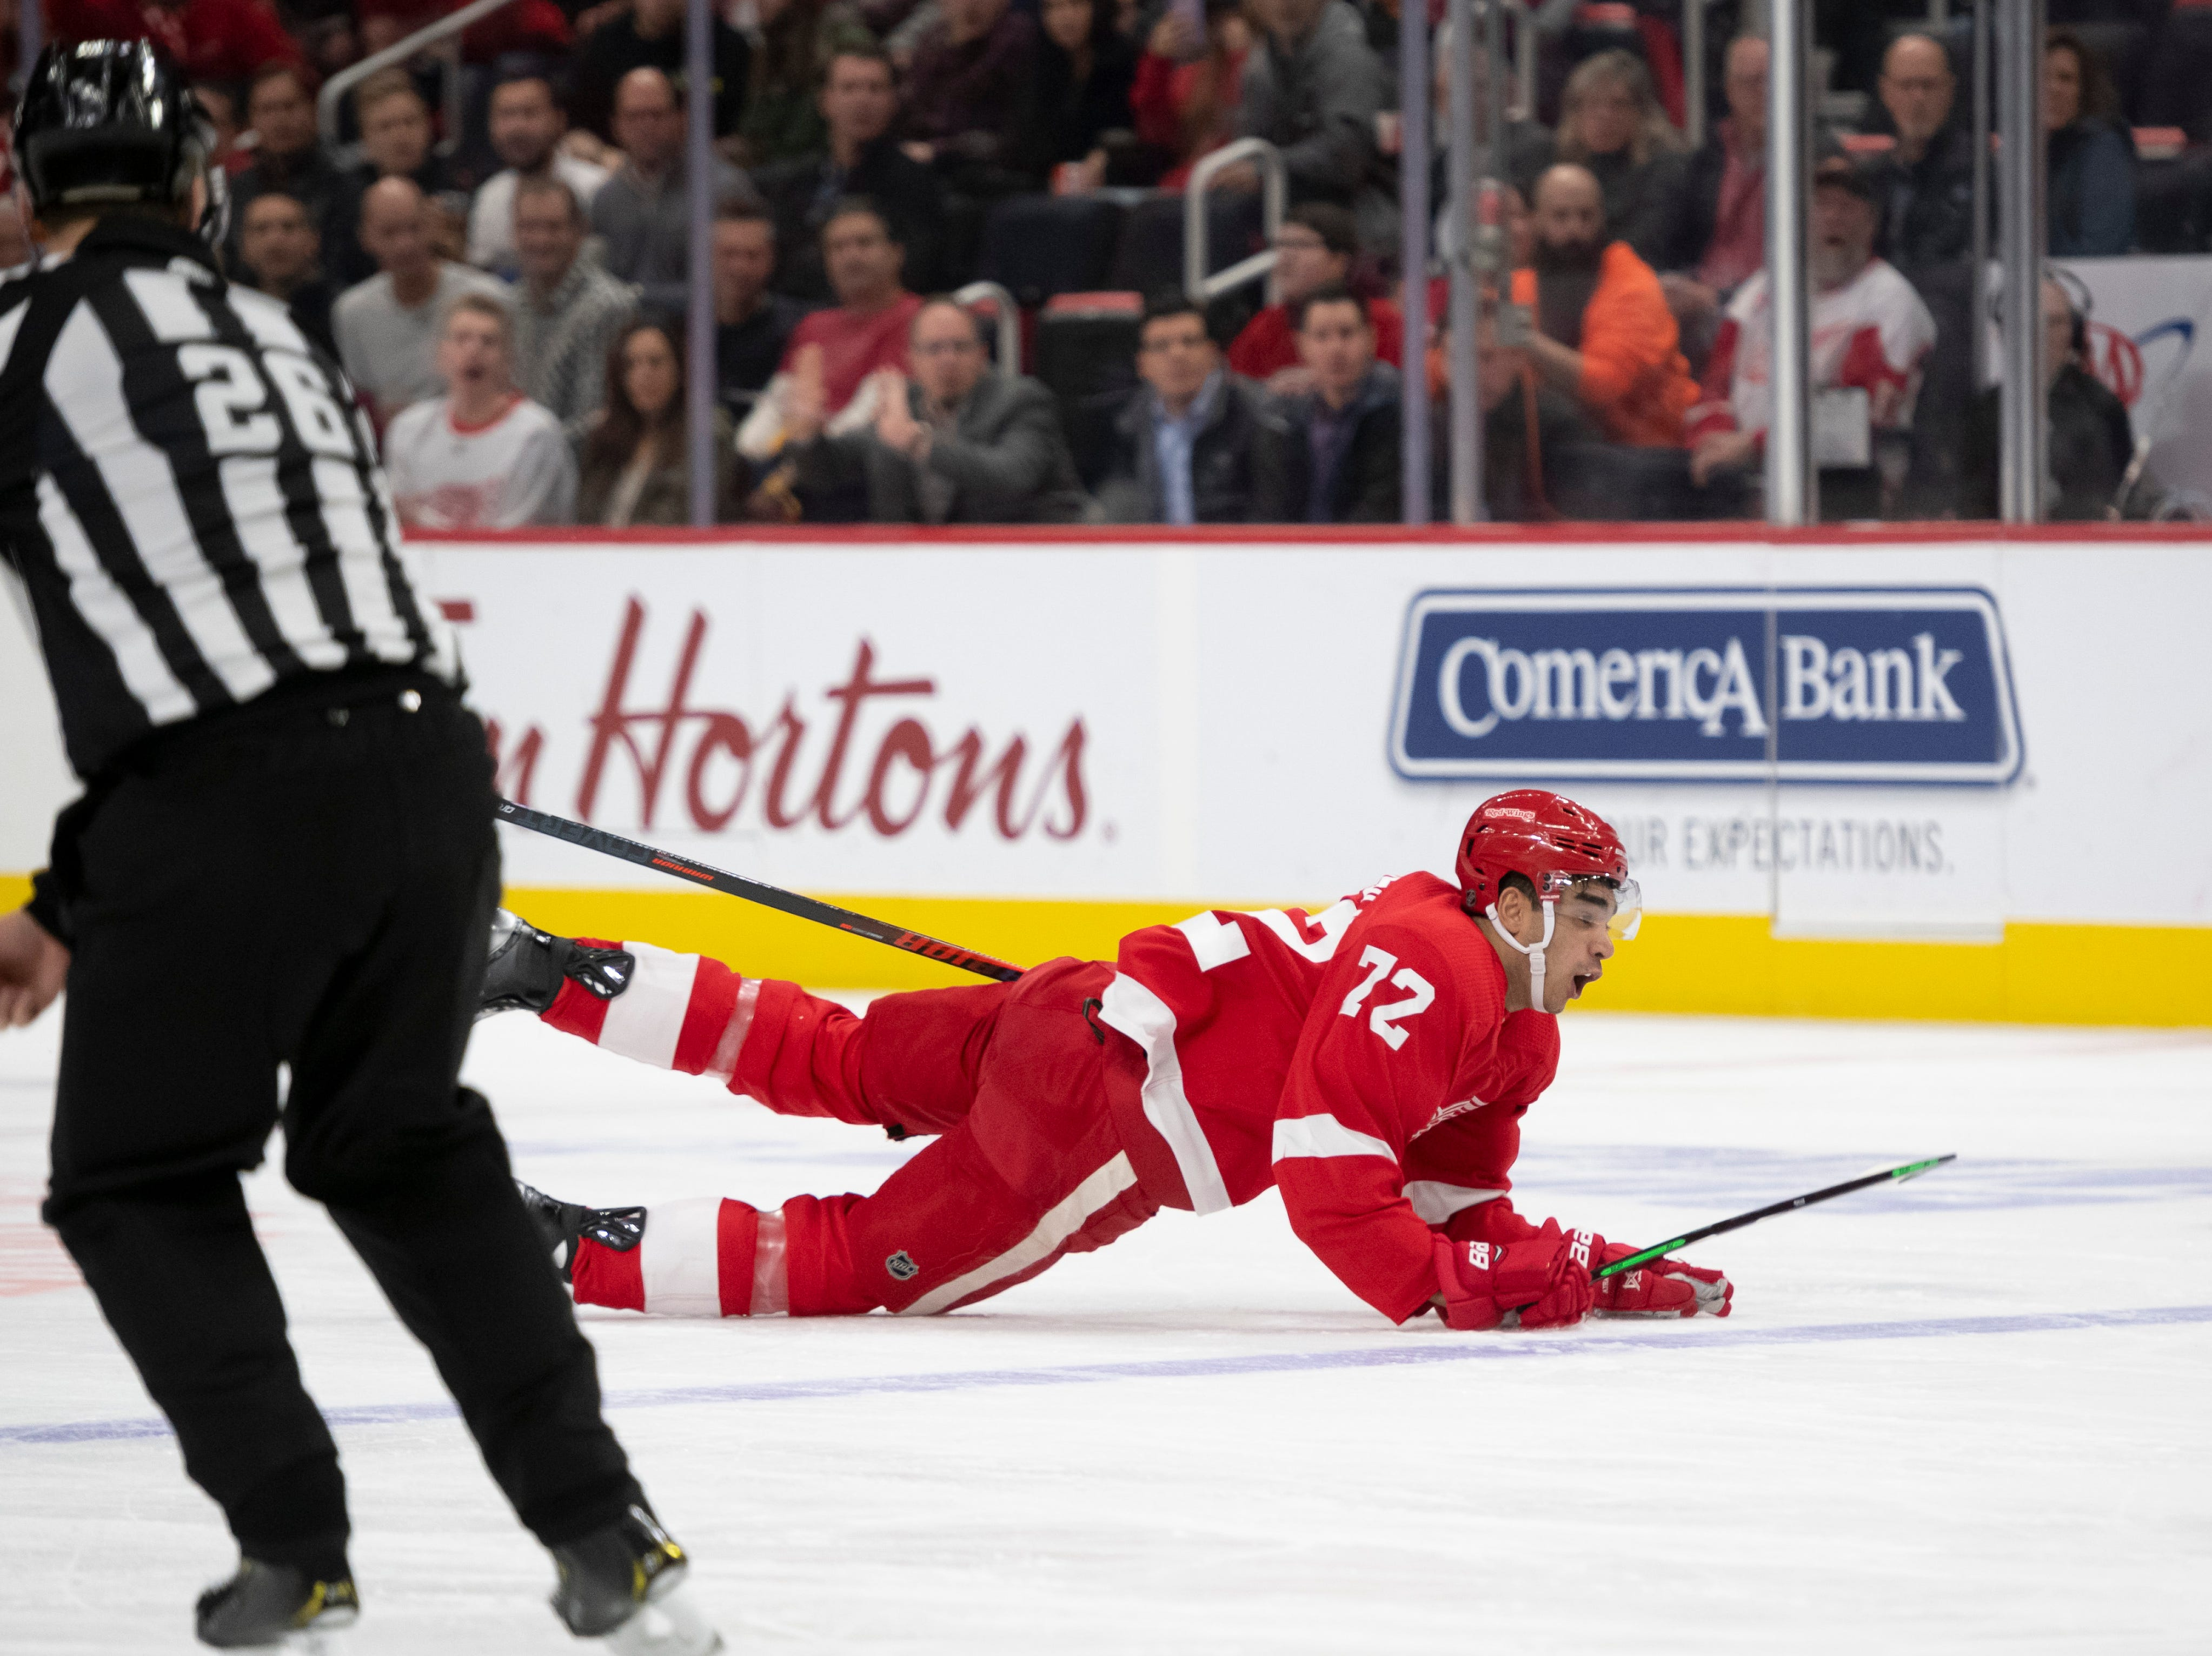 Detroit center Andreas Athanasiou hits the ice after being hooked by Tampa Bay center Alex Killorn in the third period.